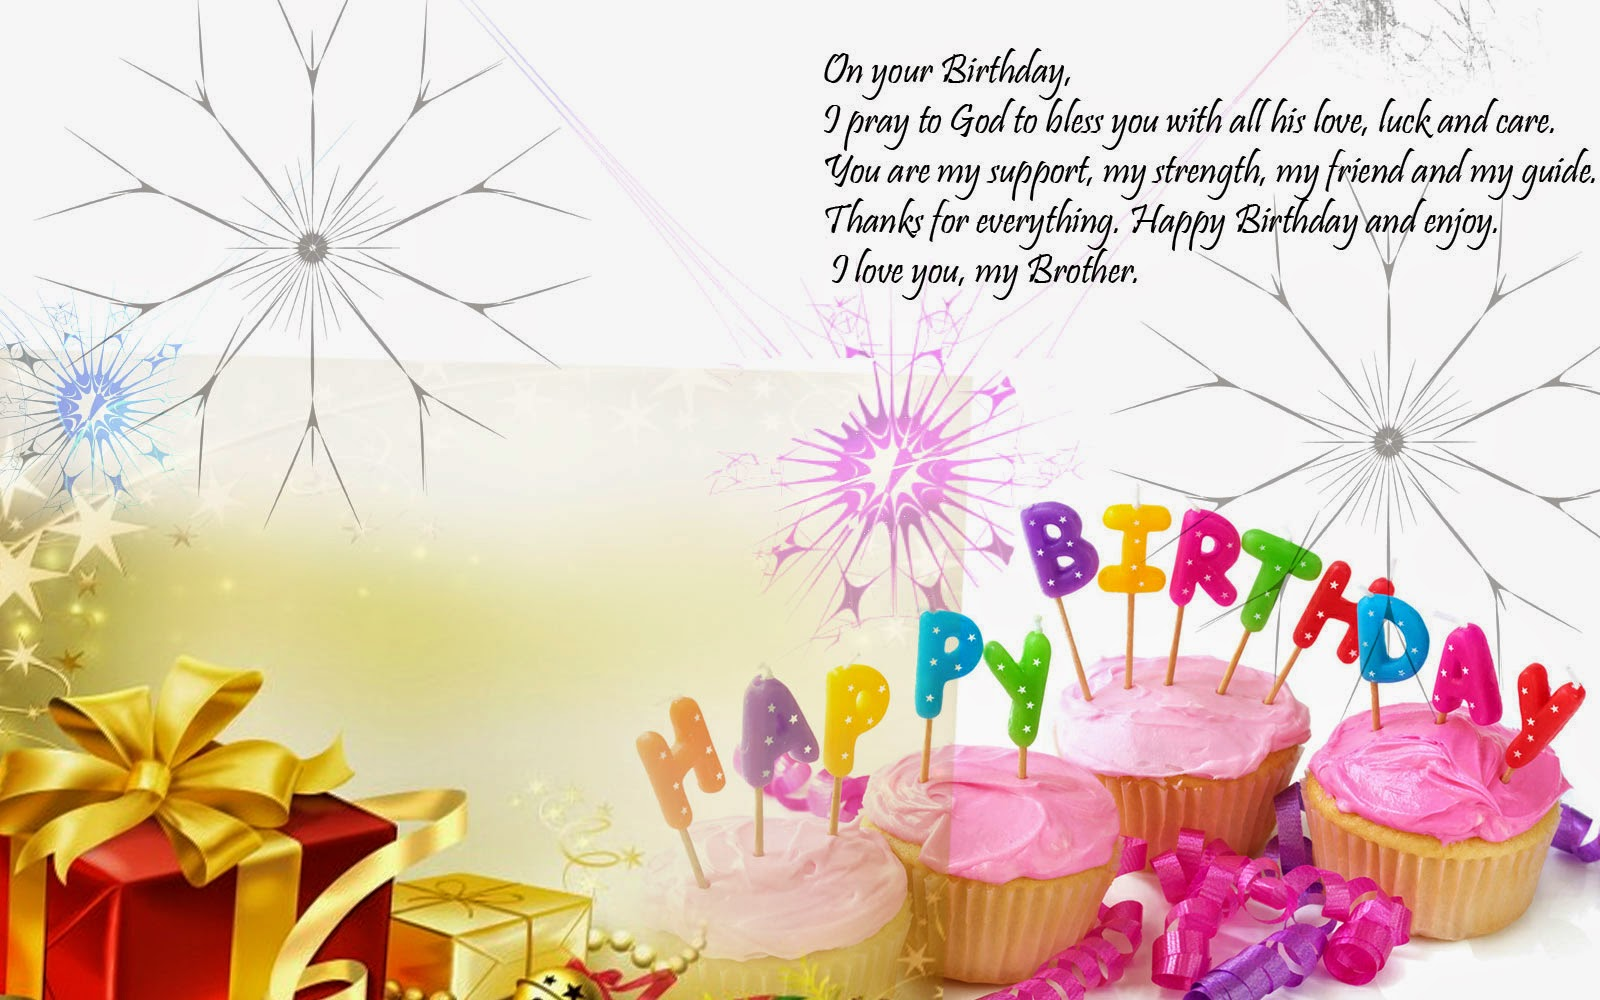 Birthday Wishes And Greetings 2018